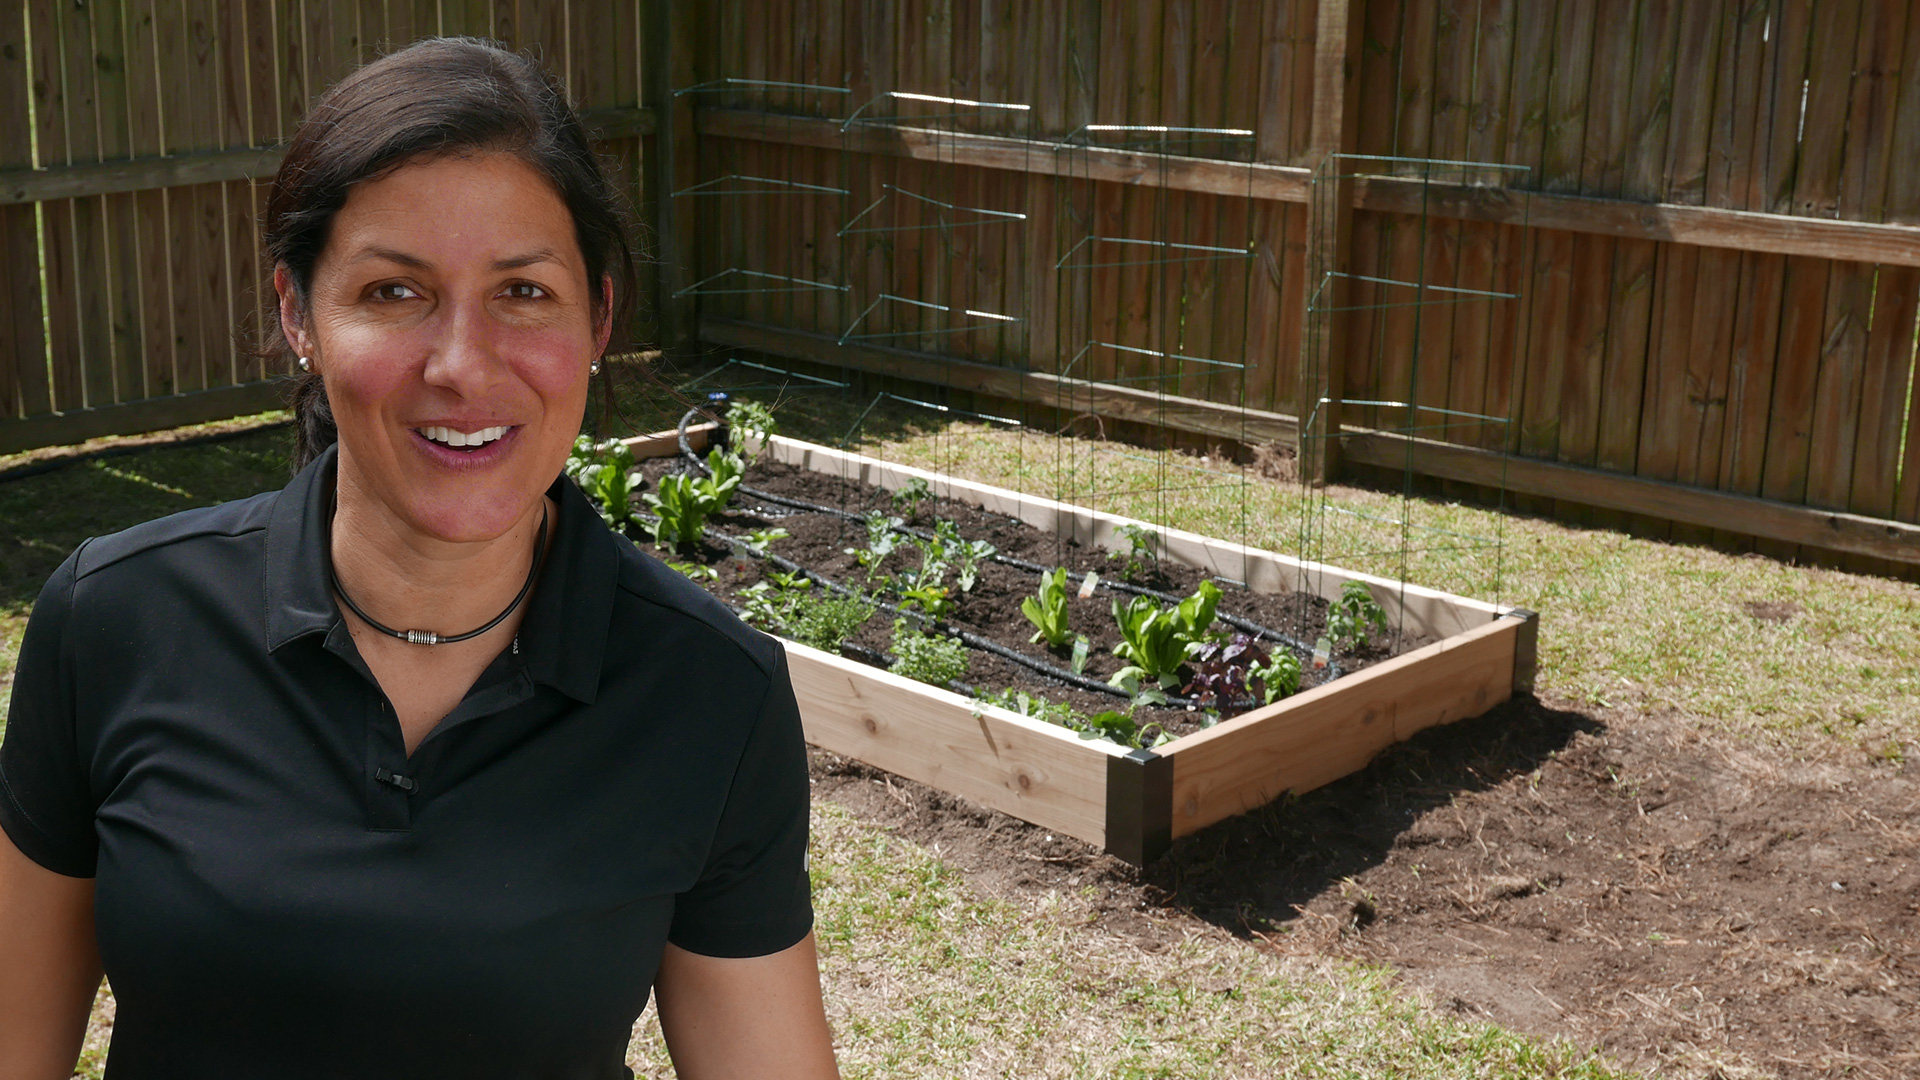 How to build a self-watering vegetable garden